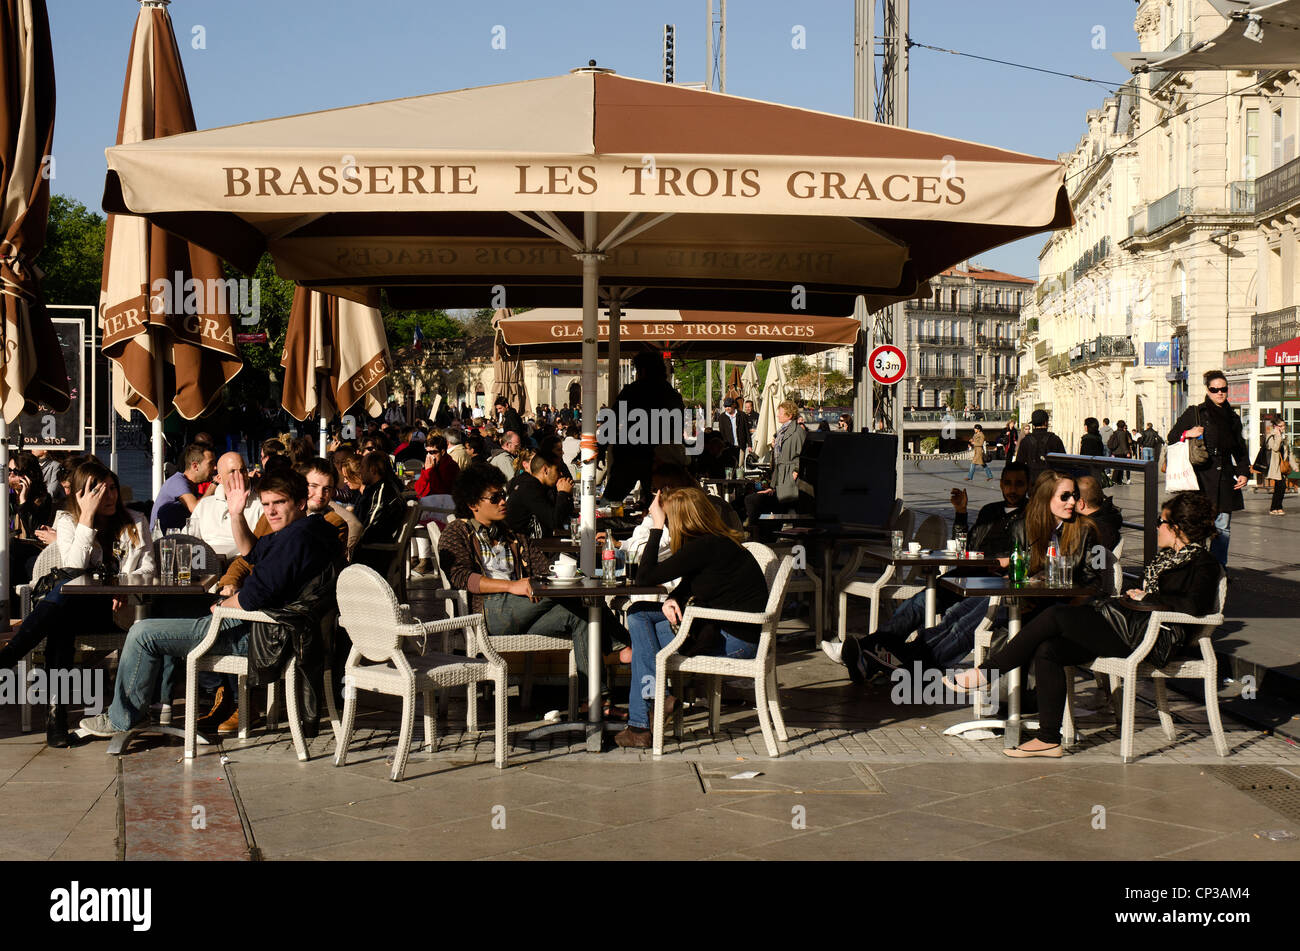 Outdoor cafe, brasserie in the Place de la Comedie in the centre of Montpellier, southern France. - Stock Image